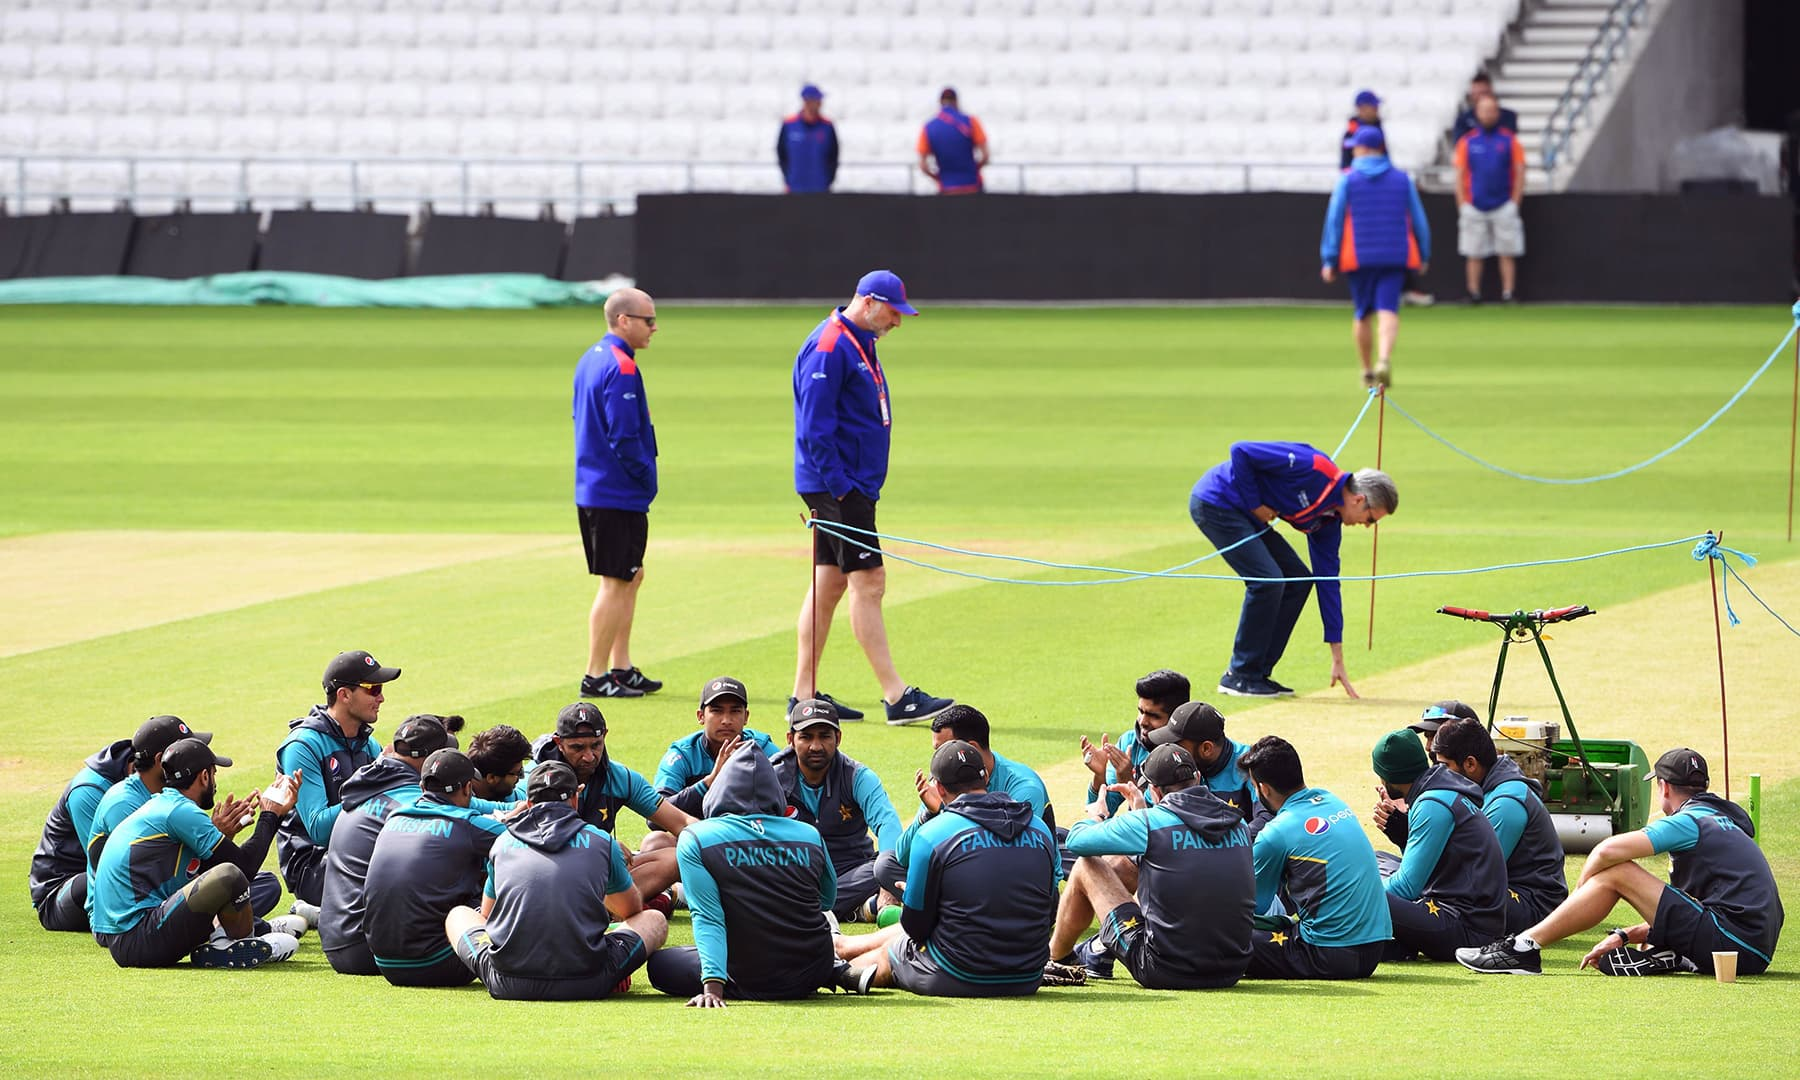 Skipper Sarfaraz Ahmed (C) speaks to his team on the field during a training session at Headingley in Leeds, northern England, ahead of their World Cup cricket match against Afghanistan on June 28. — AFP